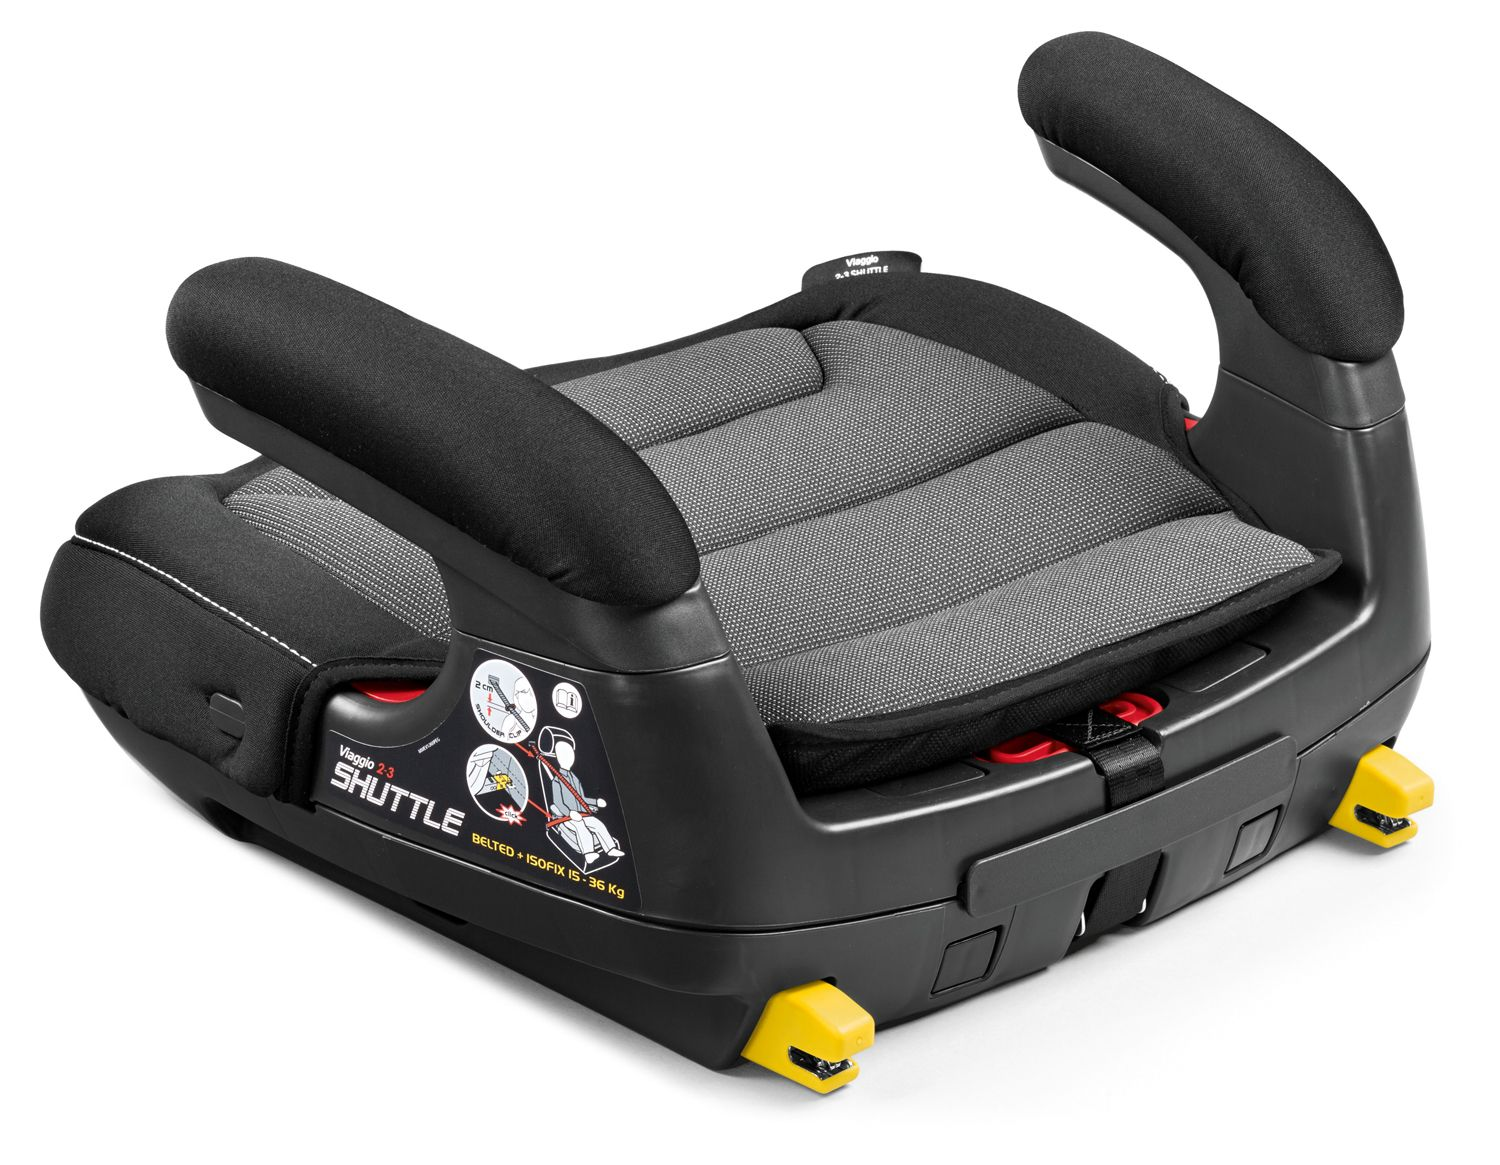 Peg Perego Car Seat >> Peg-Perego Booster Seat 2-3 Shuttle - Buy at kidsroom | Car Seats